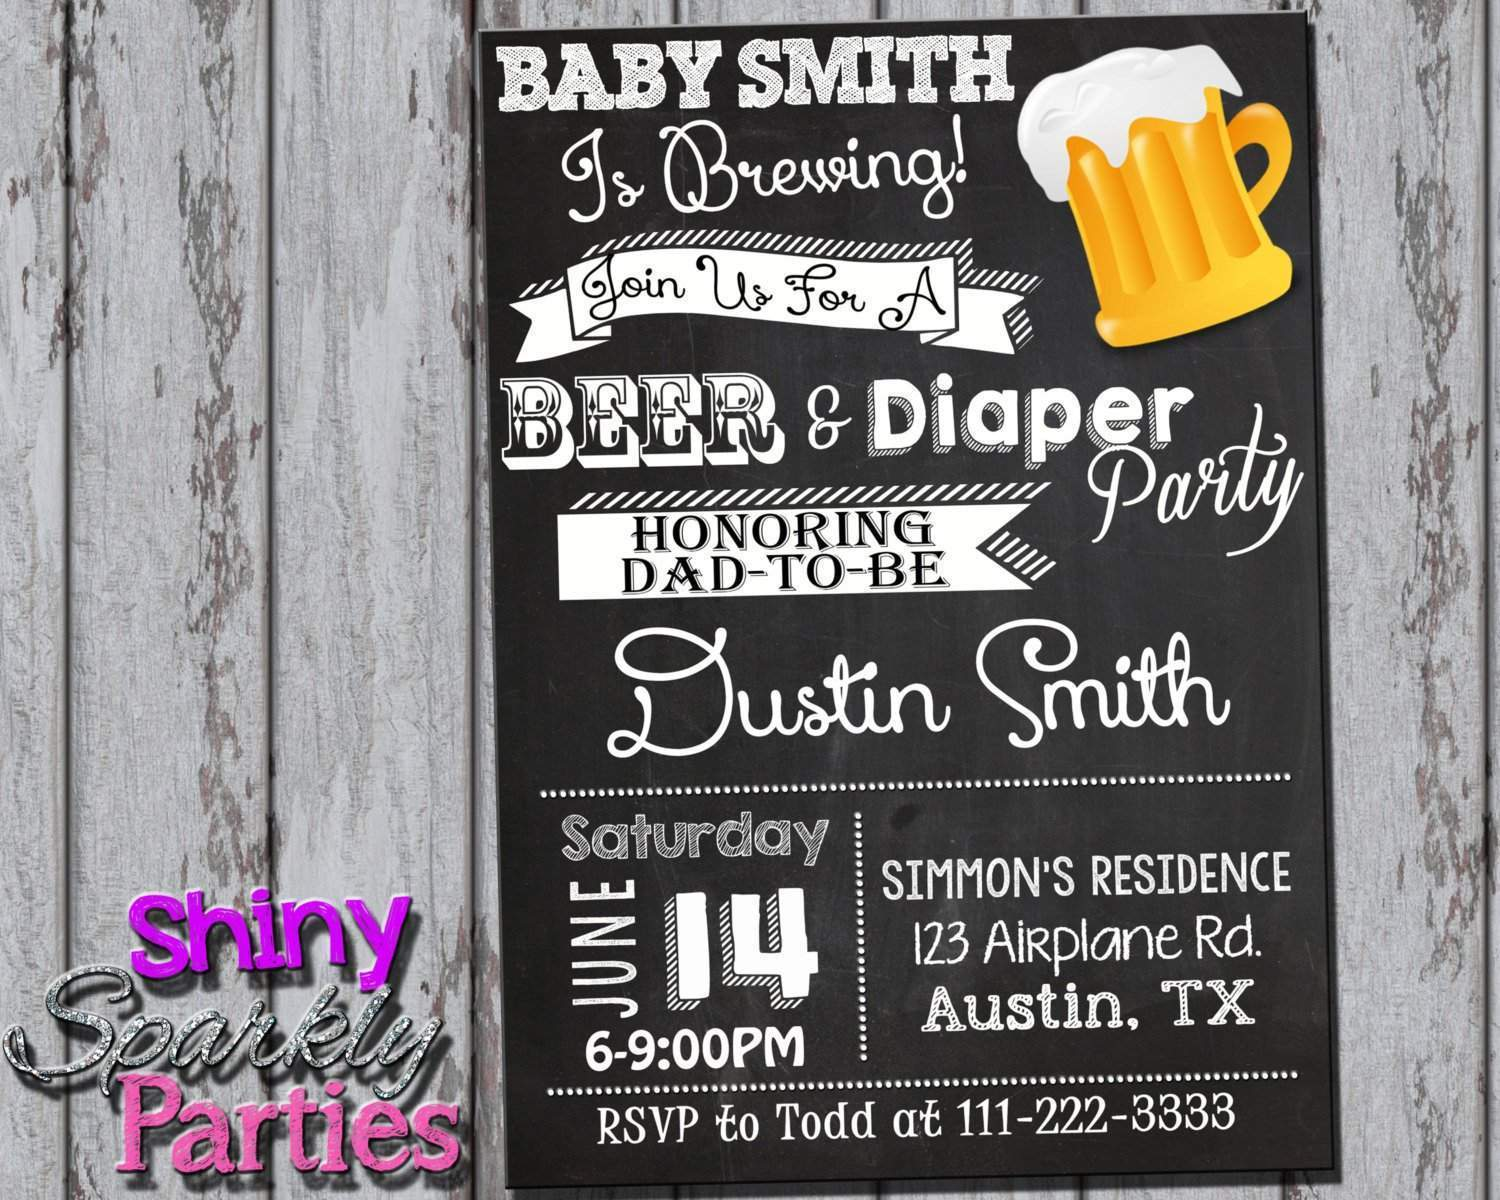 Full Size of Baby Shower:precious Coed Baby Shower Picture Designs Coed Baby Shower Martha Stewart Baby Shower Baby Shower De Baby Shower Ideas Baby Shower Tableware A Baby Shower Bebe Baby Shower